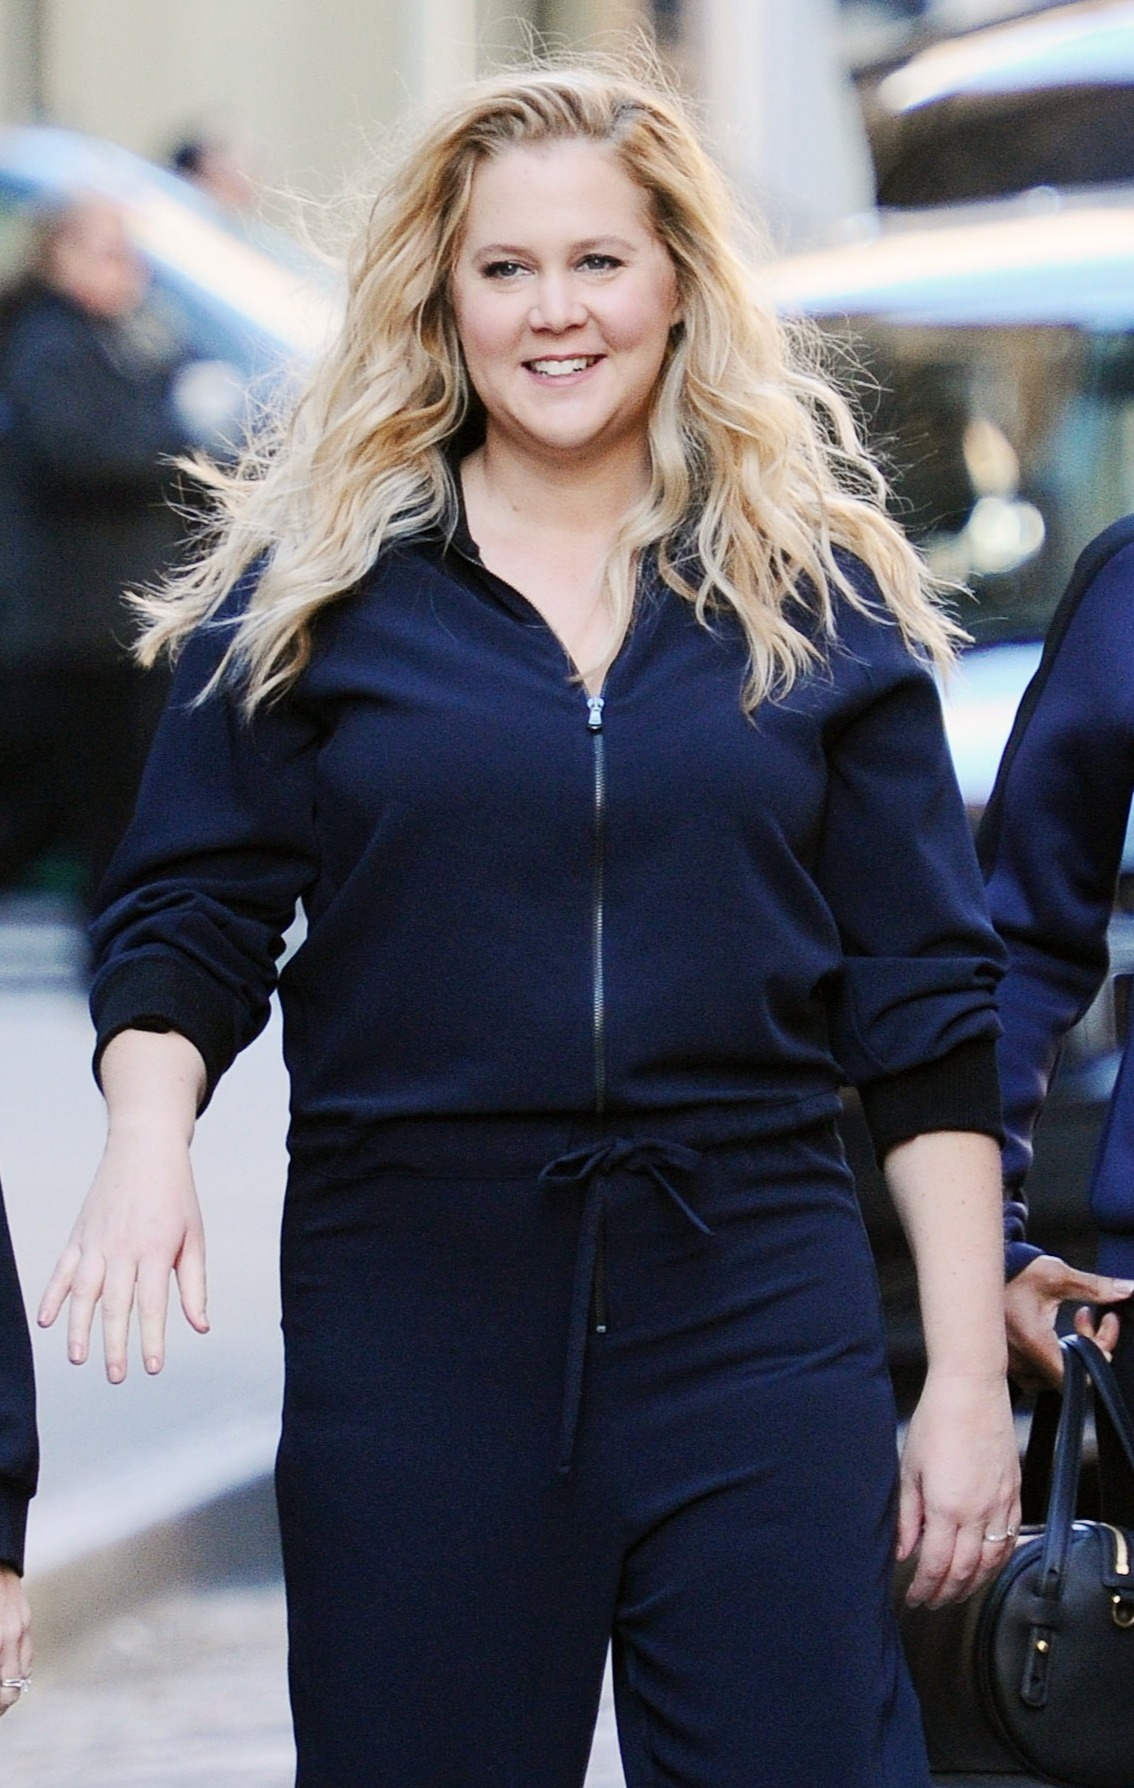 Pregnant Amy Schumer is seen on set of a commercial wearing a tracksuit in New York, NY. Pictured: Amy Schumer Ref: SPL5036624 251018 NON-EXCLUSIVE Picture by: SplashNews.com Splash News and Pictures Los Angeles: 310-821-2666 New York: 212-619-2666 London: 0207 644 7656 Milan: 02 4399 8577 photodesk@splashnews.com World Rights